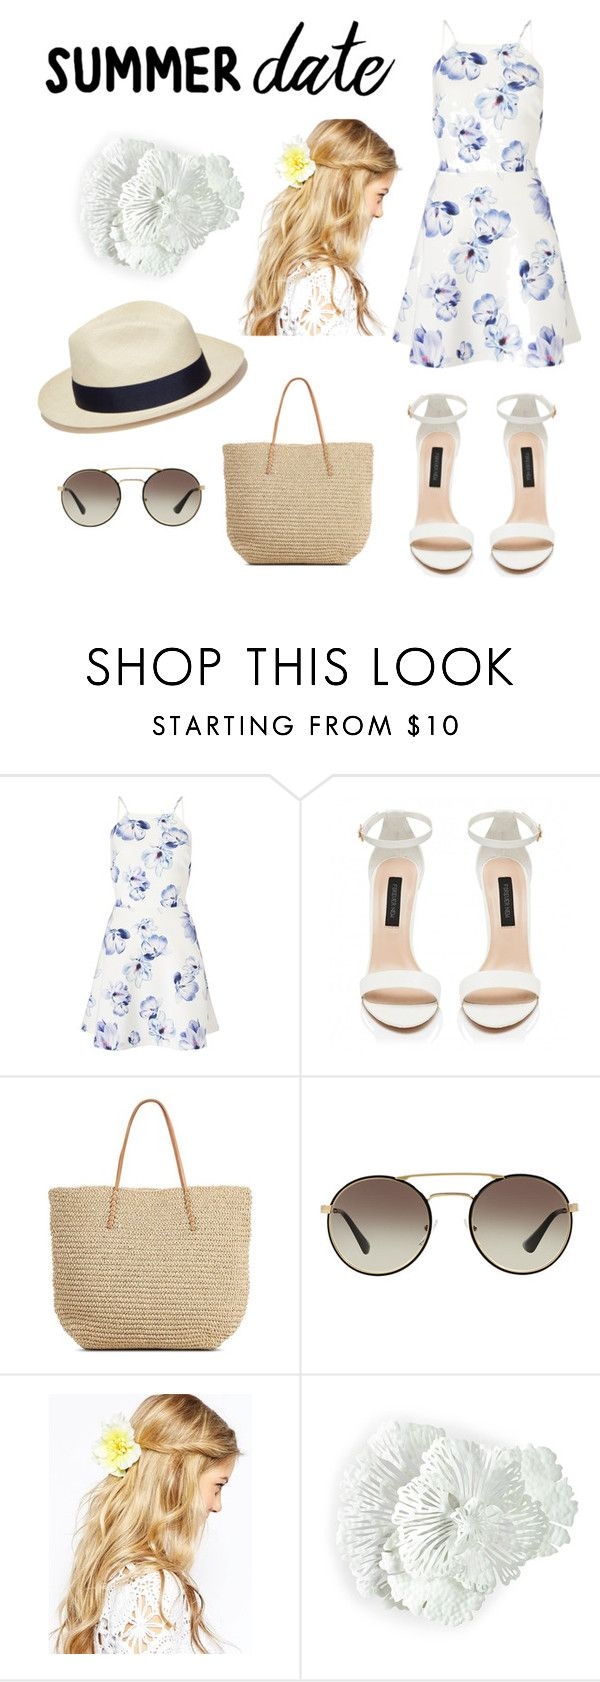 """""""Summer Date """" by cicilivelife443 ❤ liked on Polyvore featuring beauty, Lipsy, Target, Prada, Artesano, ASOS, beach and summerdate"""